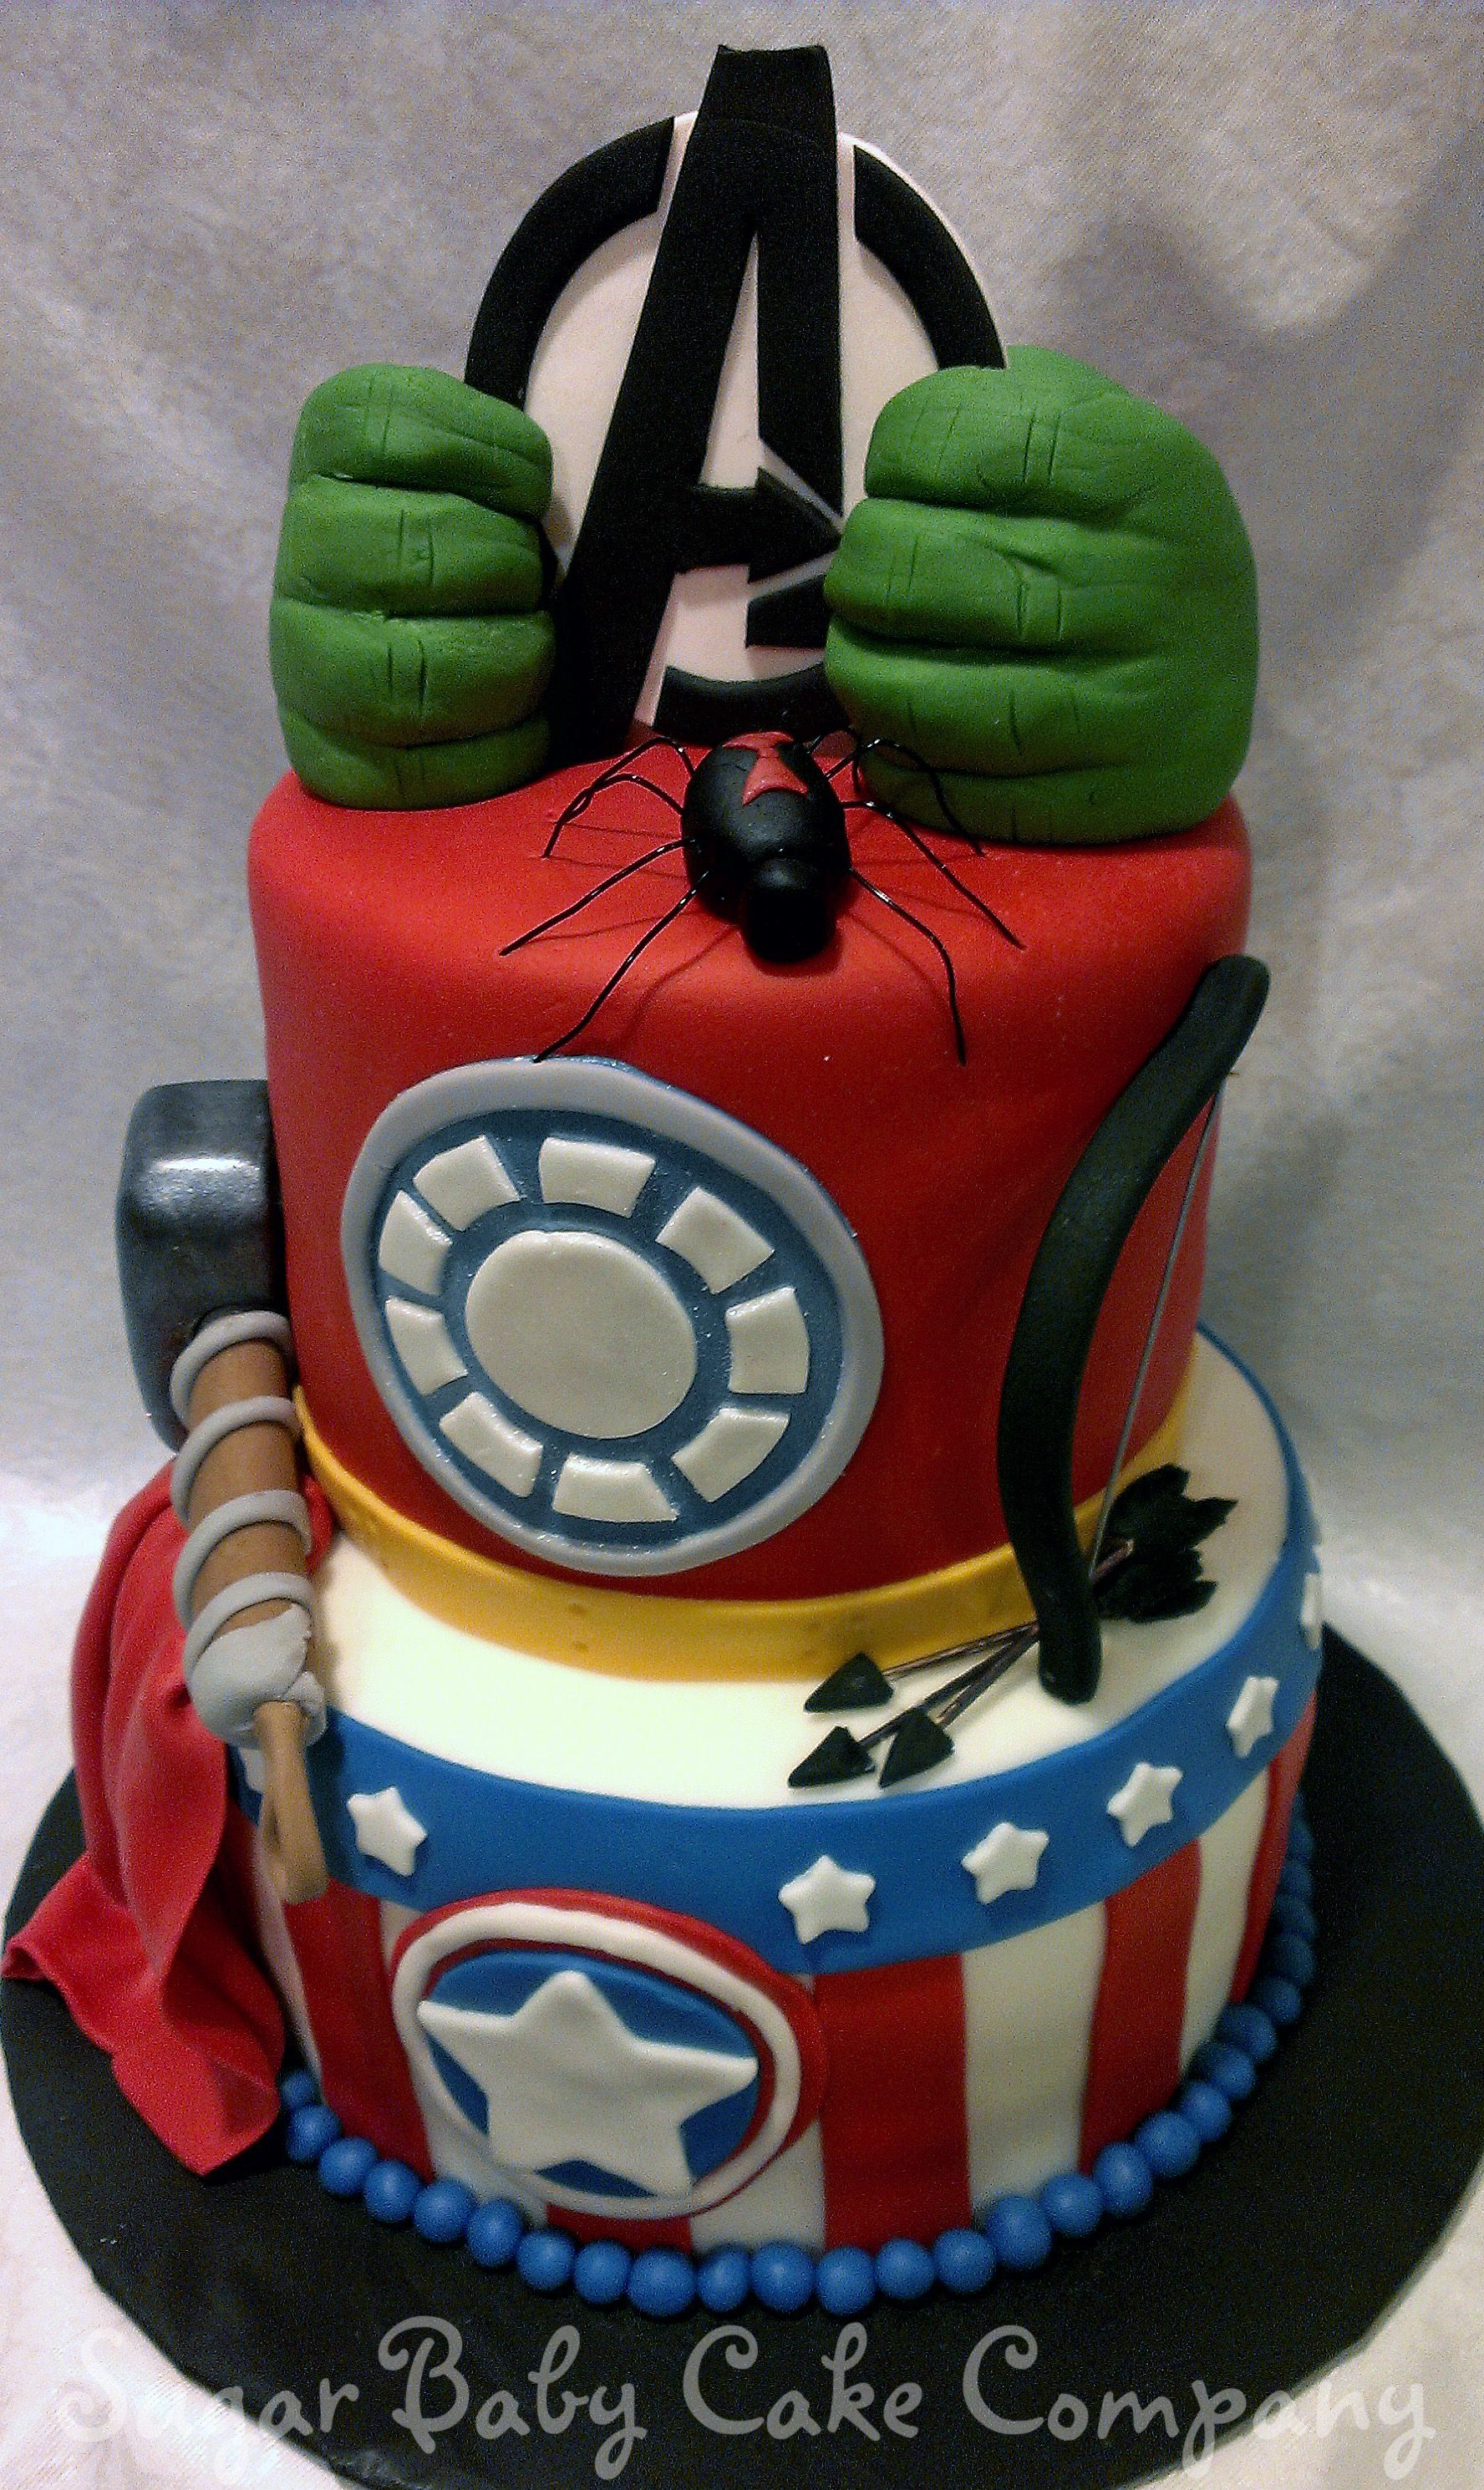 Little Boy Birthday Cakes Avengers Cake An I Made For A 4 Year Old